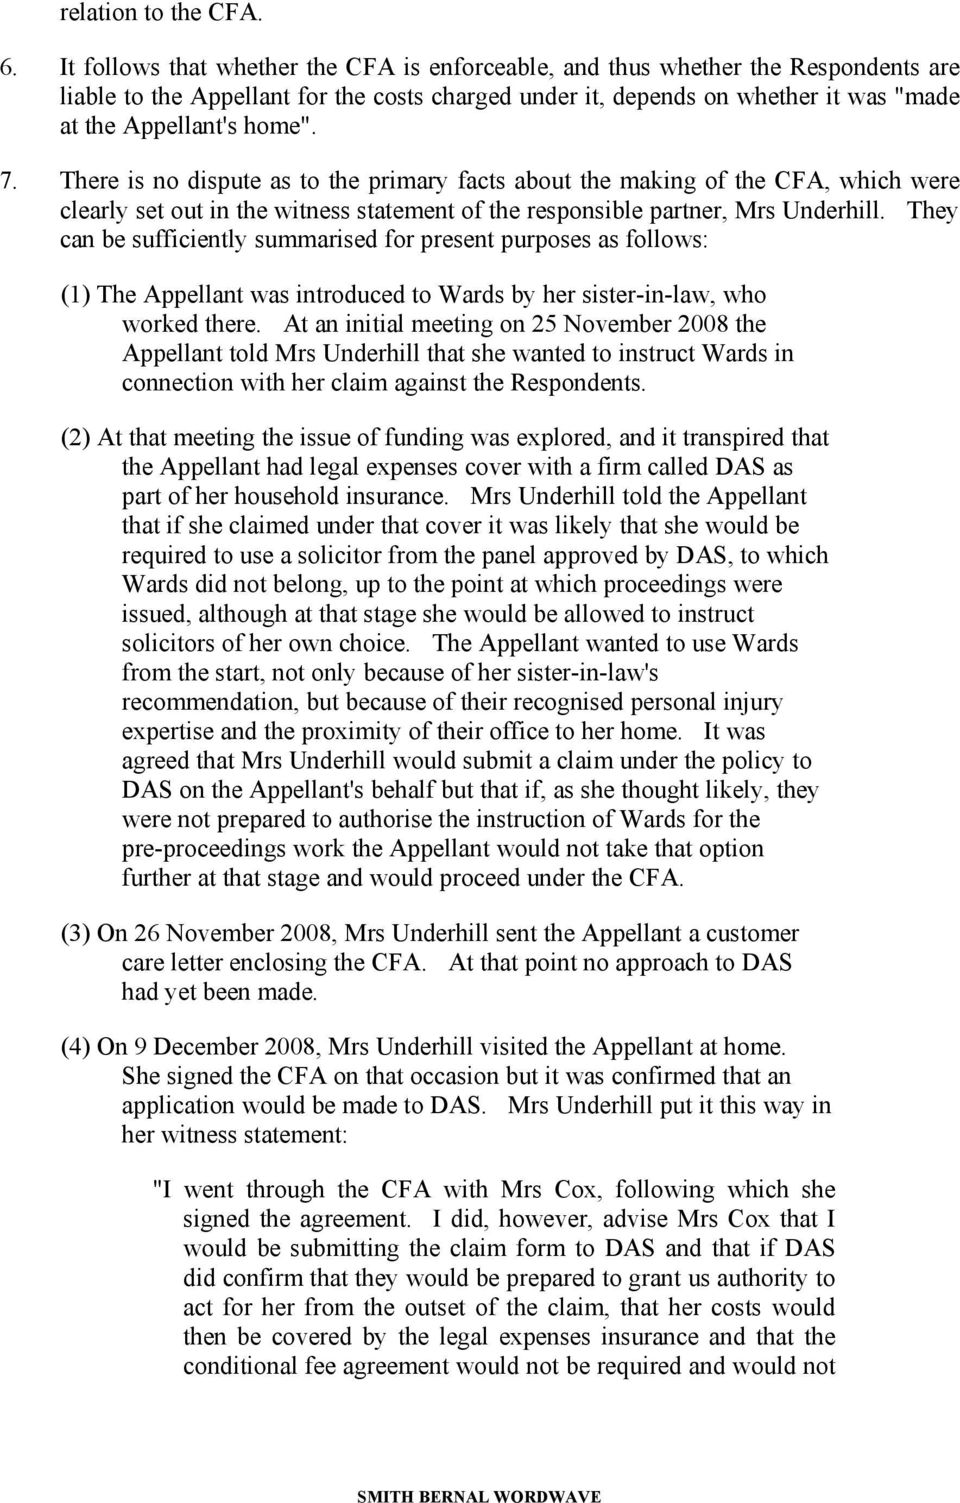 7. There is no dispute as to the primary facts about the making of the CFA, which were clearly set out in the witness statement of the responsible partner, Mrs Underhill.